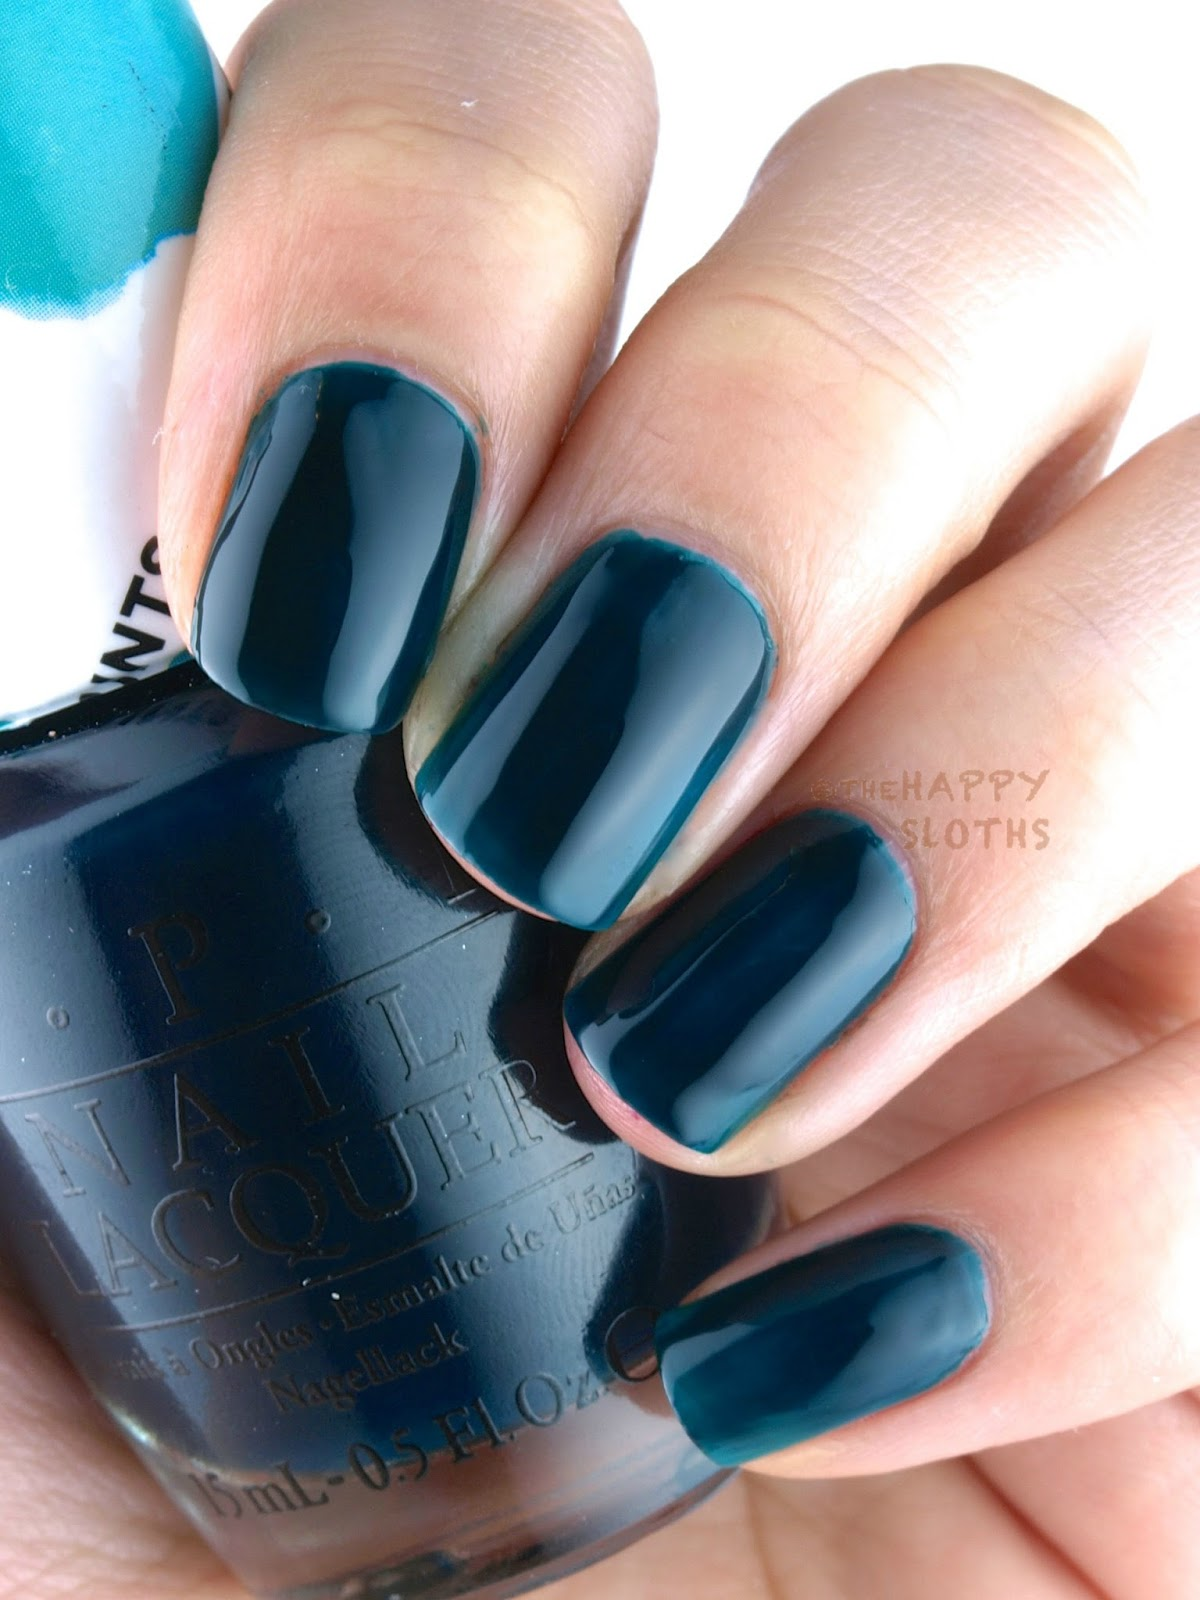 Opi Color Paints Blendable Nail Lacquer Collection Review And Swatches Turquoise Aesthetic